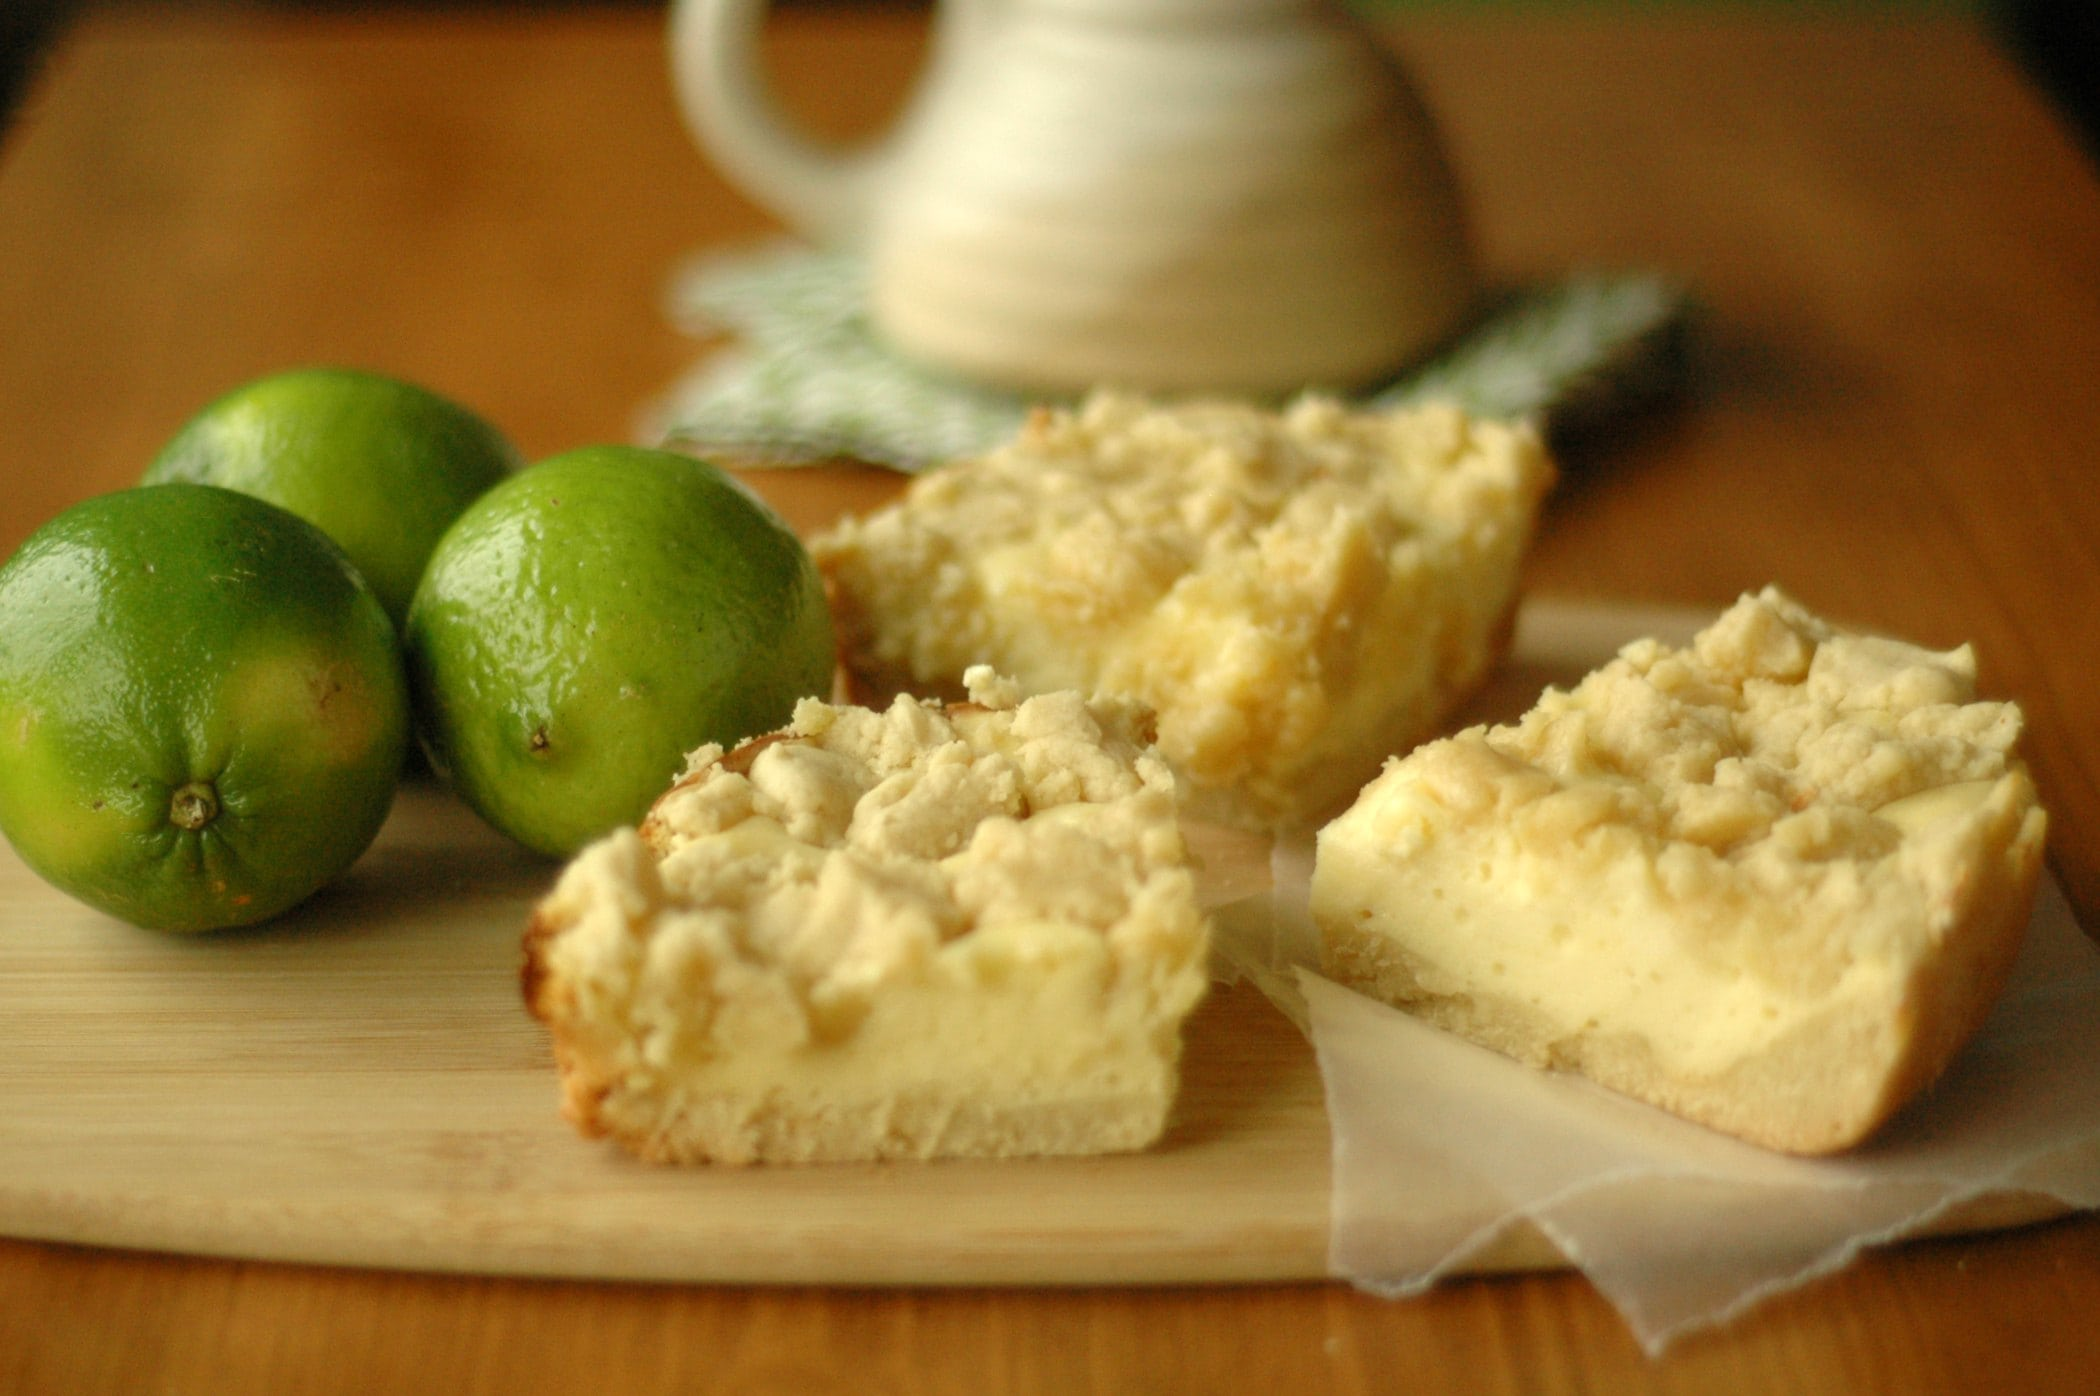 Cheesecake Cookie Bars on cutting board with three whole limes